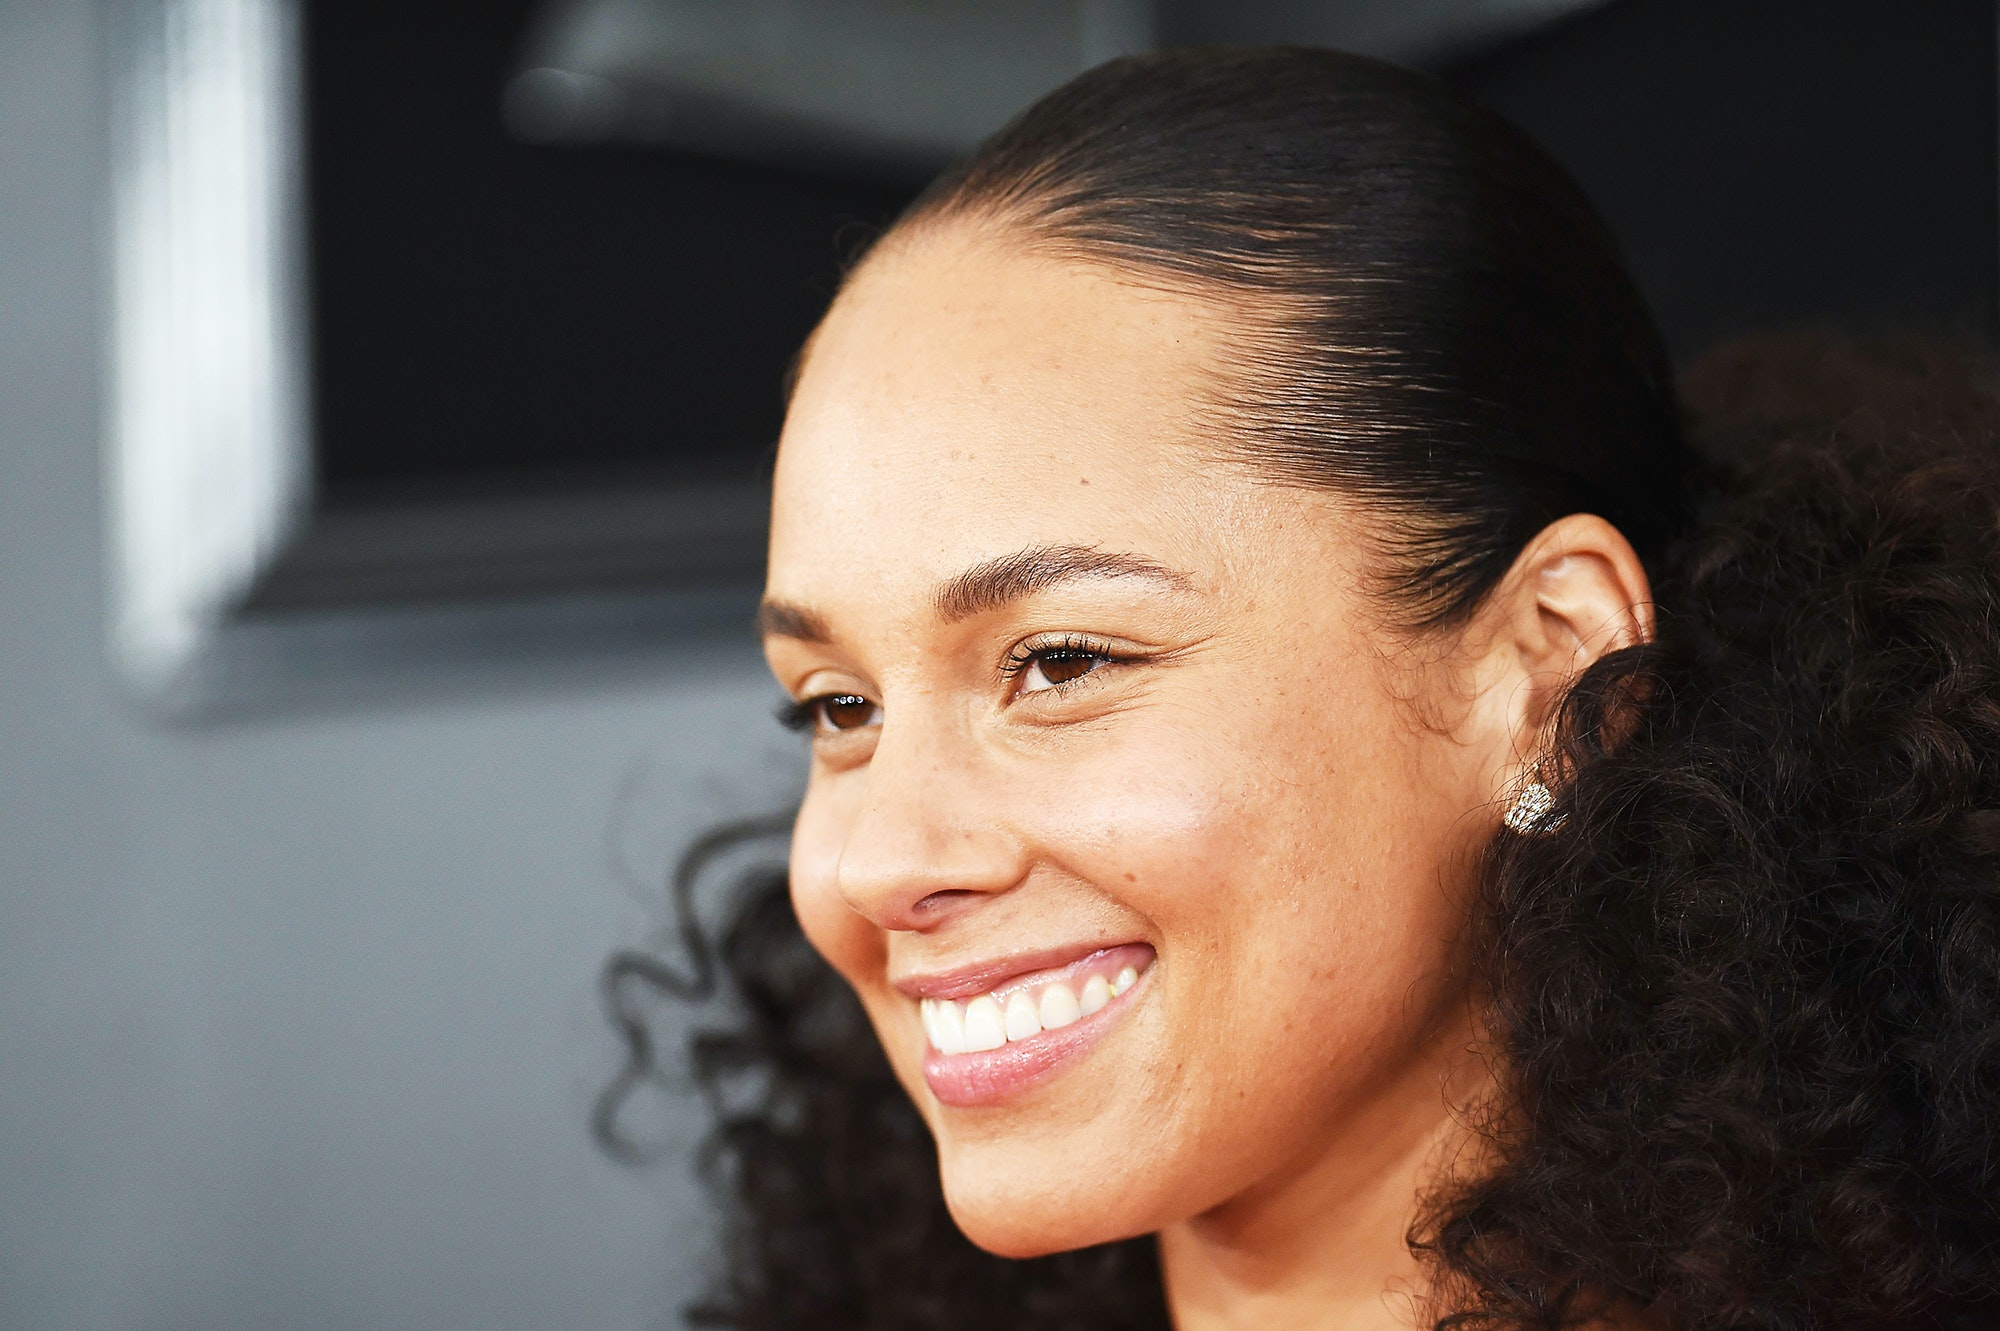 Confirmed: Alicia Keys Wore This Beloved Natural Drugstore Brand to the GRAMMYs